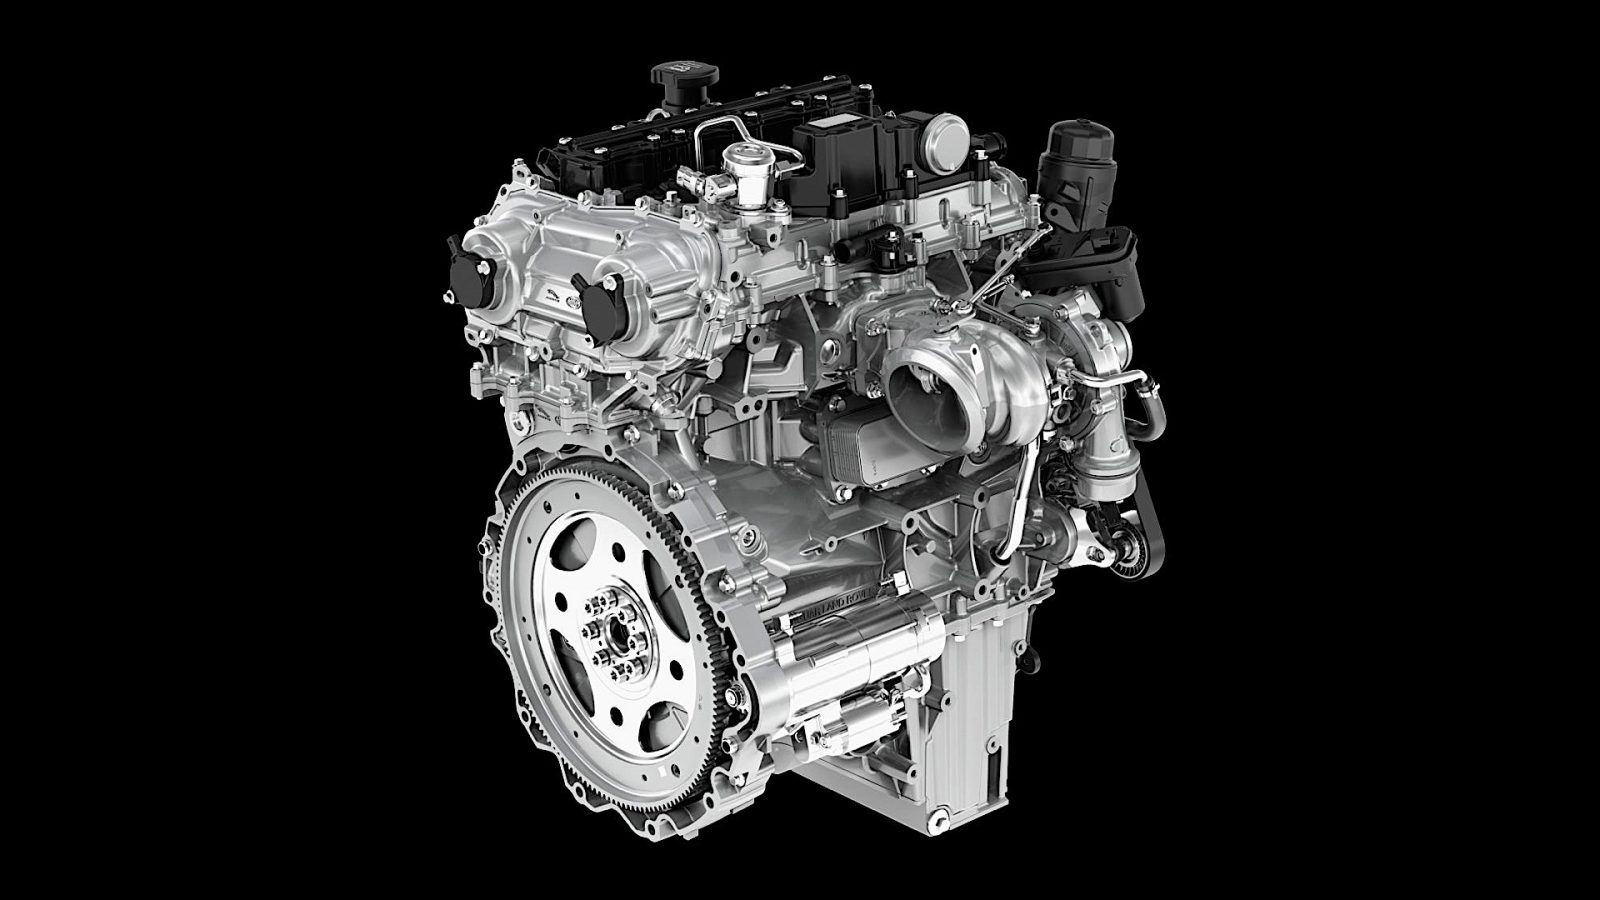 gone-in-six-minutes-jaguar-land-rover-plant-robbed-of-engines-worth-3-million_1